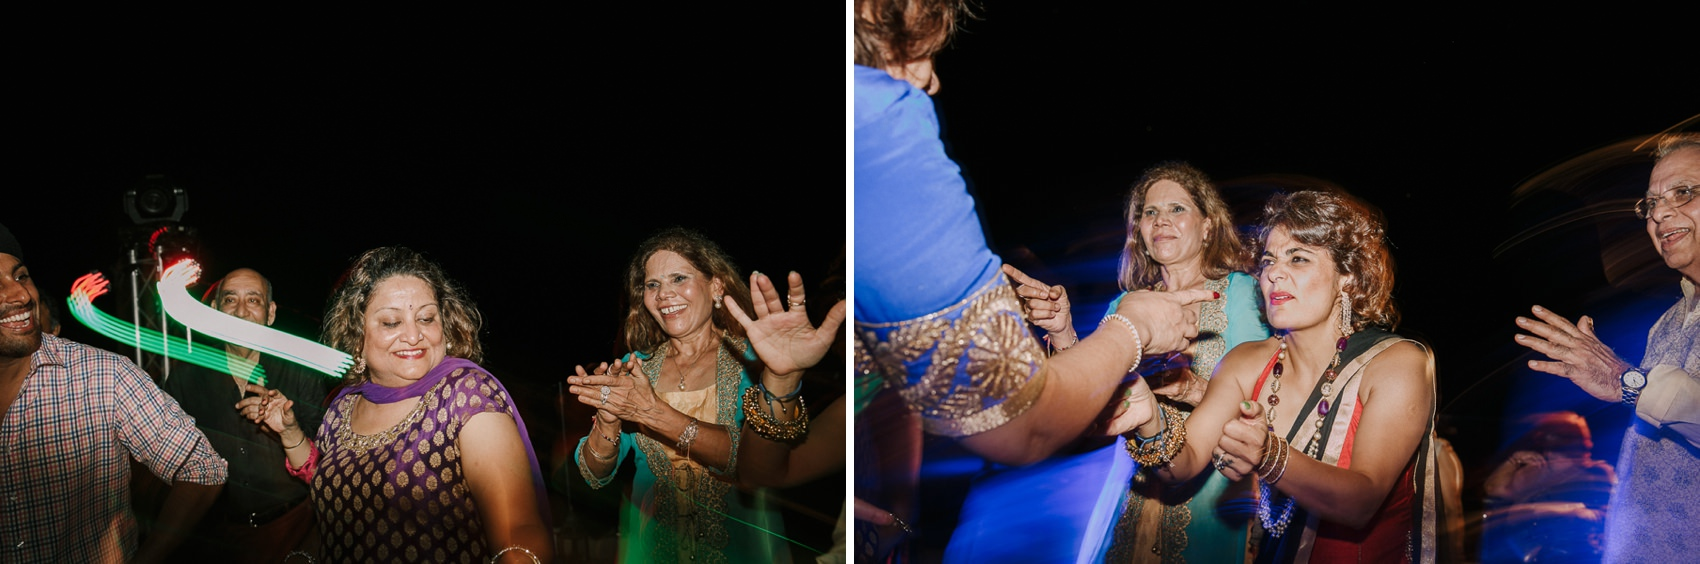 Indian-Wedding-Photography-Maala-Rohan_0061